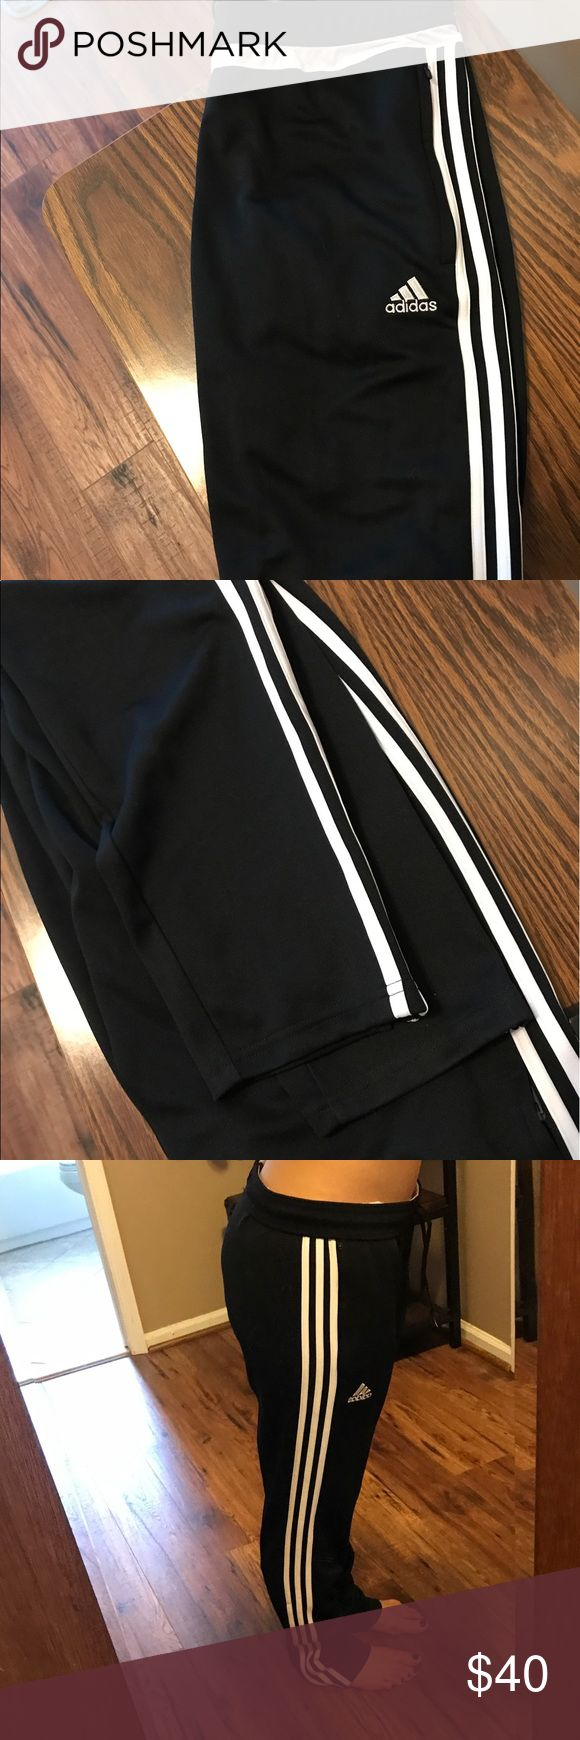 Adidas jogger sweatpants Brand new adidas jogger sweatpants. Never worn. Given to me as a gift but they were too big. adidas Pants Track Pants & Joggers